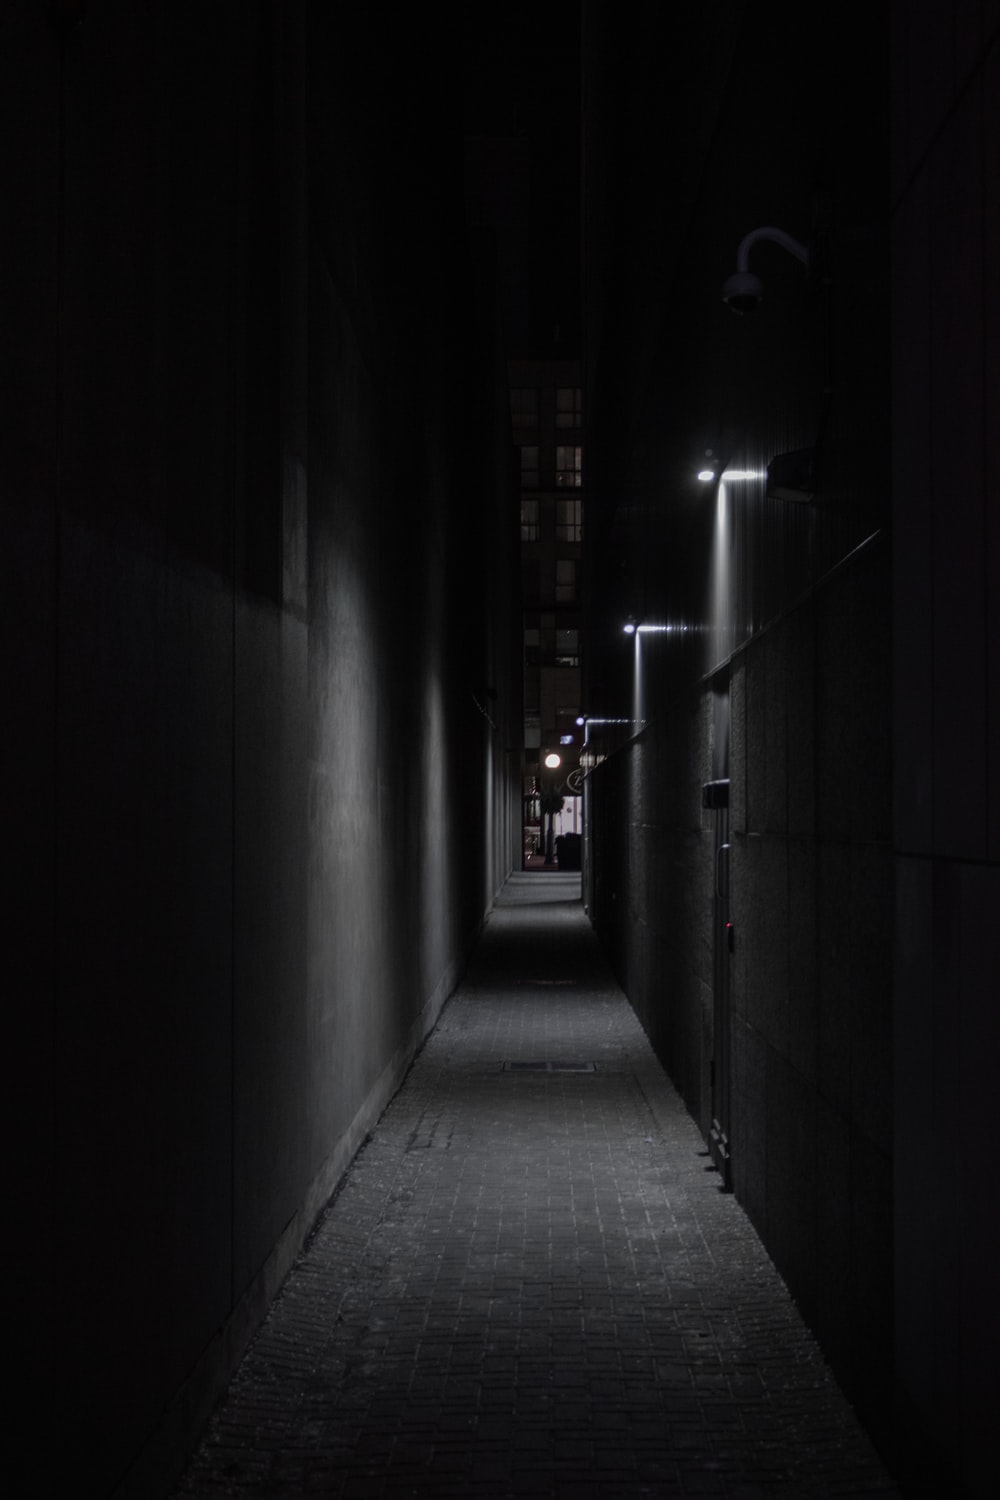 empty hallway with light turned on during night time